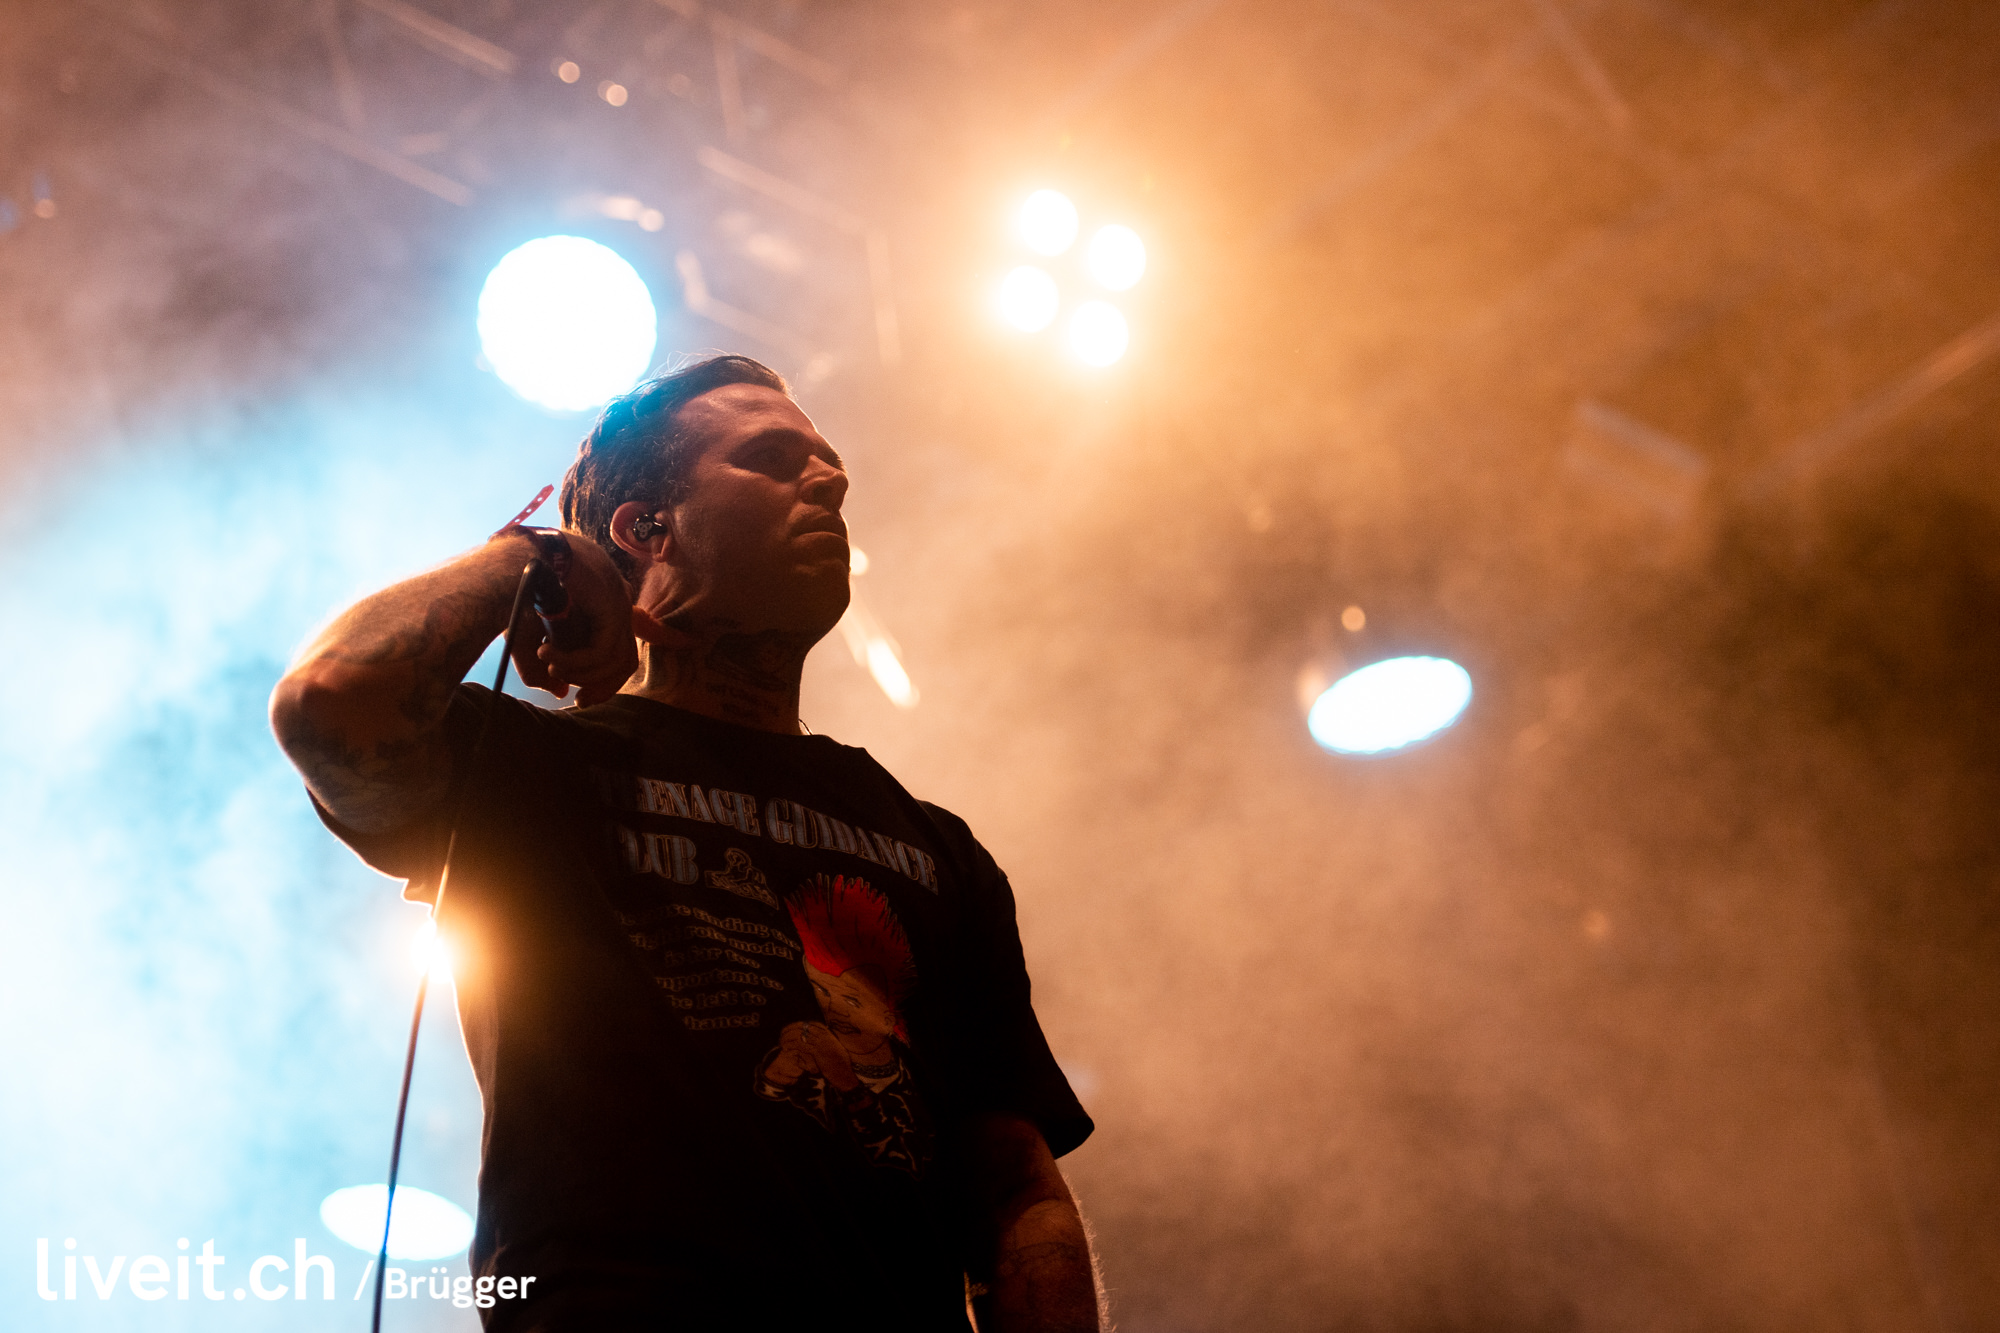 SCHWEIZ GREENFIELD FESTIVAL 2019 The Amity Affliction